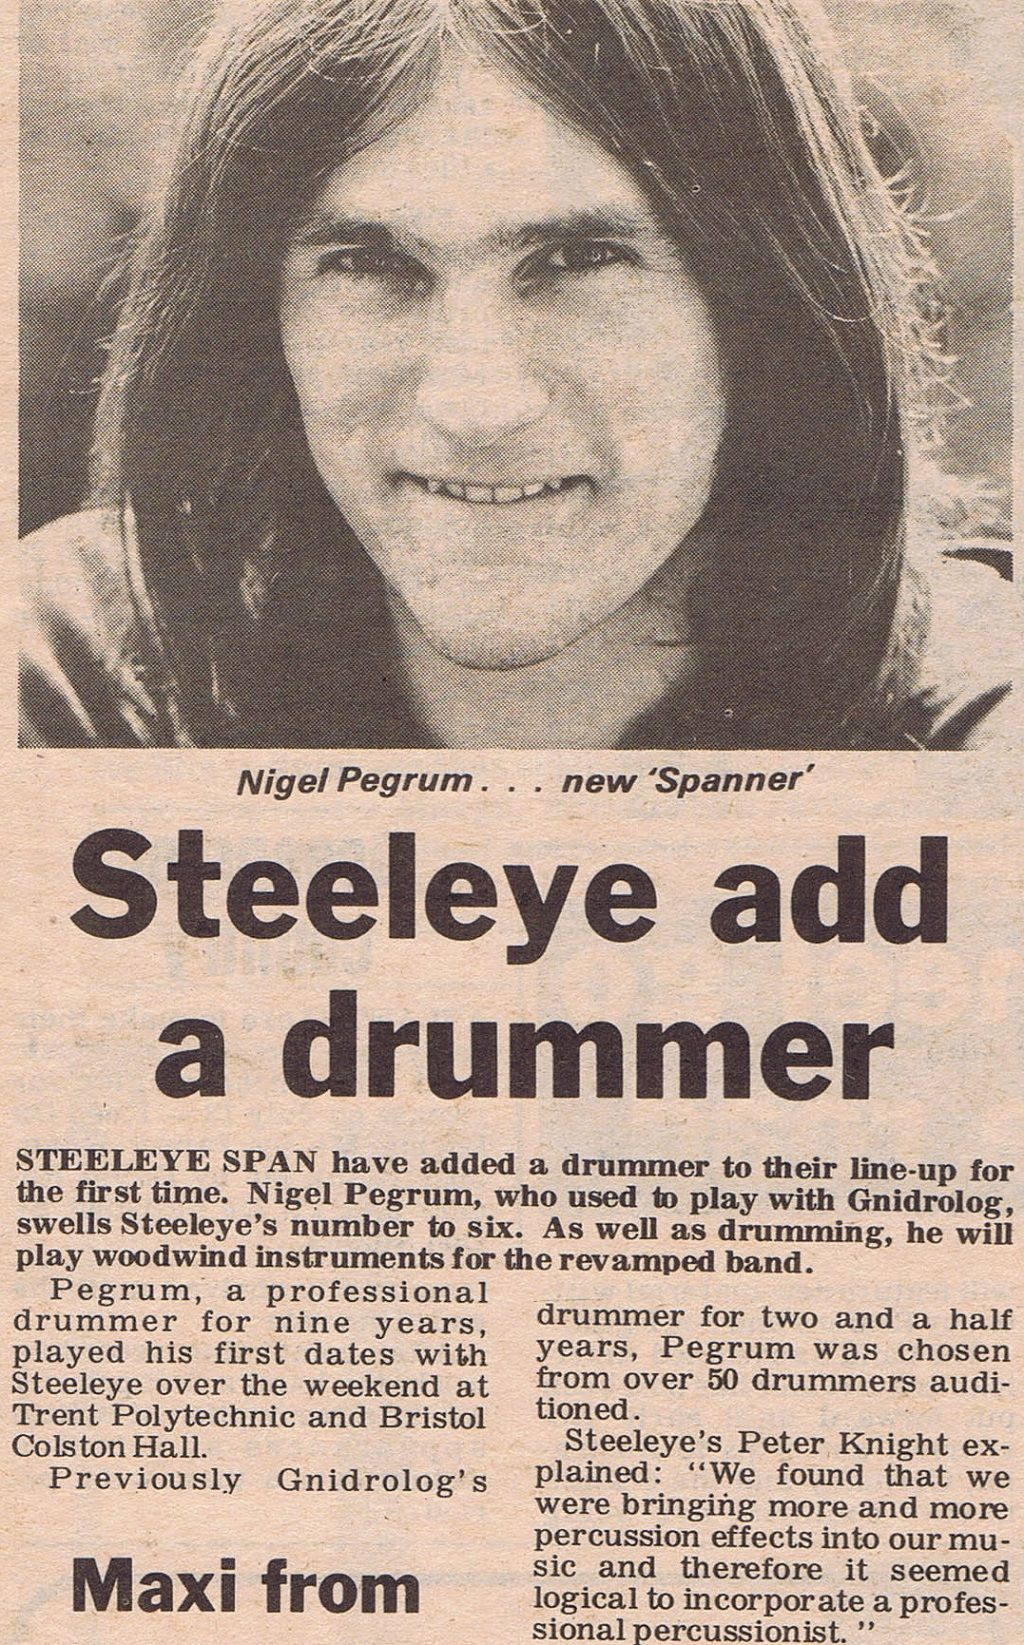 nigel pegrum drums steeleye span